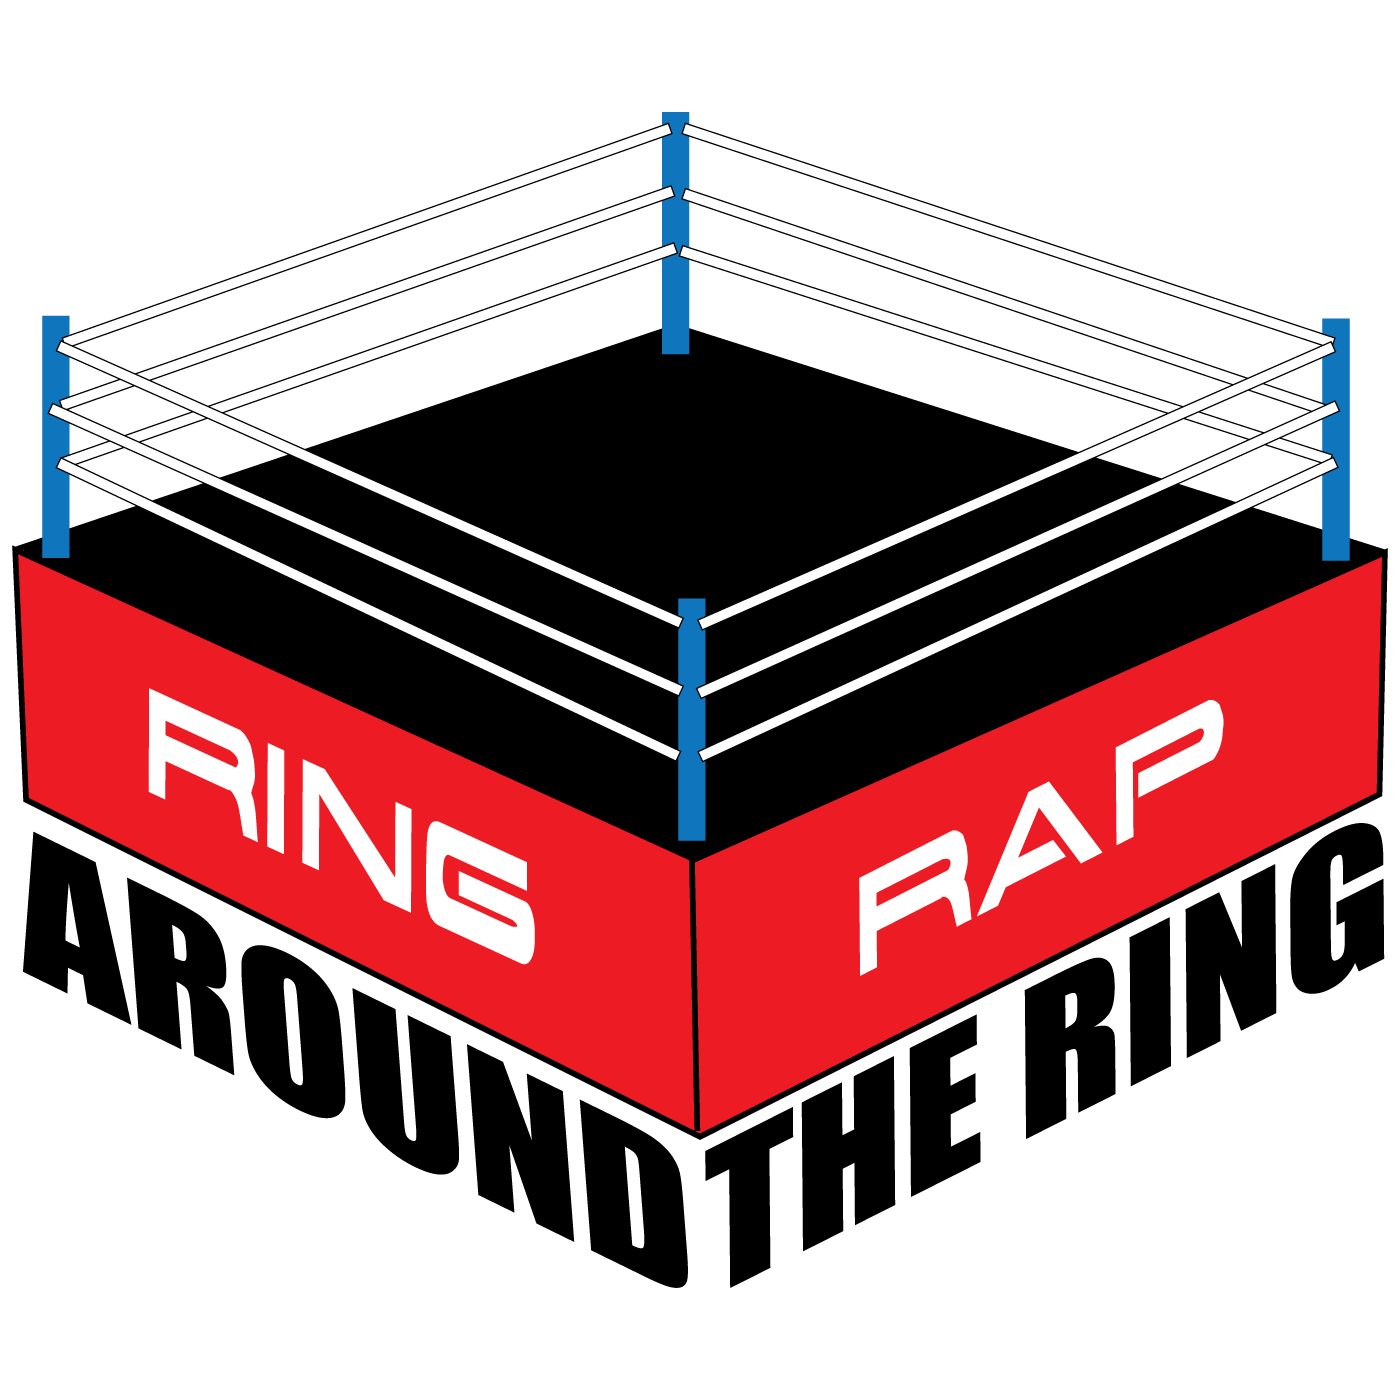 Around the Ring with Ring Rap: 07/28/14 - Spike TV Cancels TNA Impact, Buff Bagwell, Prince Devitt officially with WWE, Trent Barreta injury, plus more!